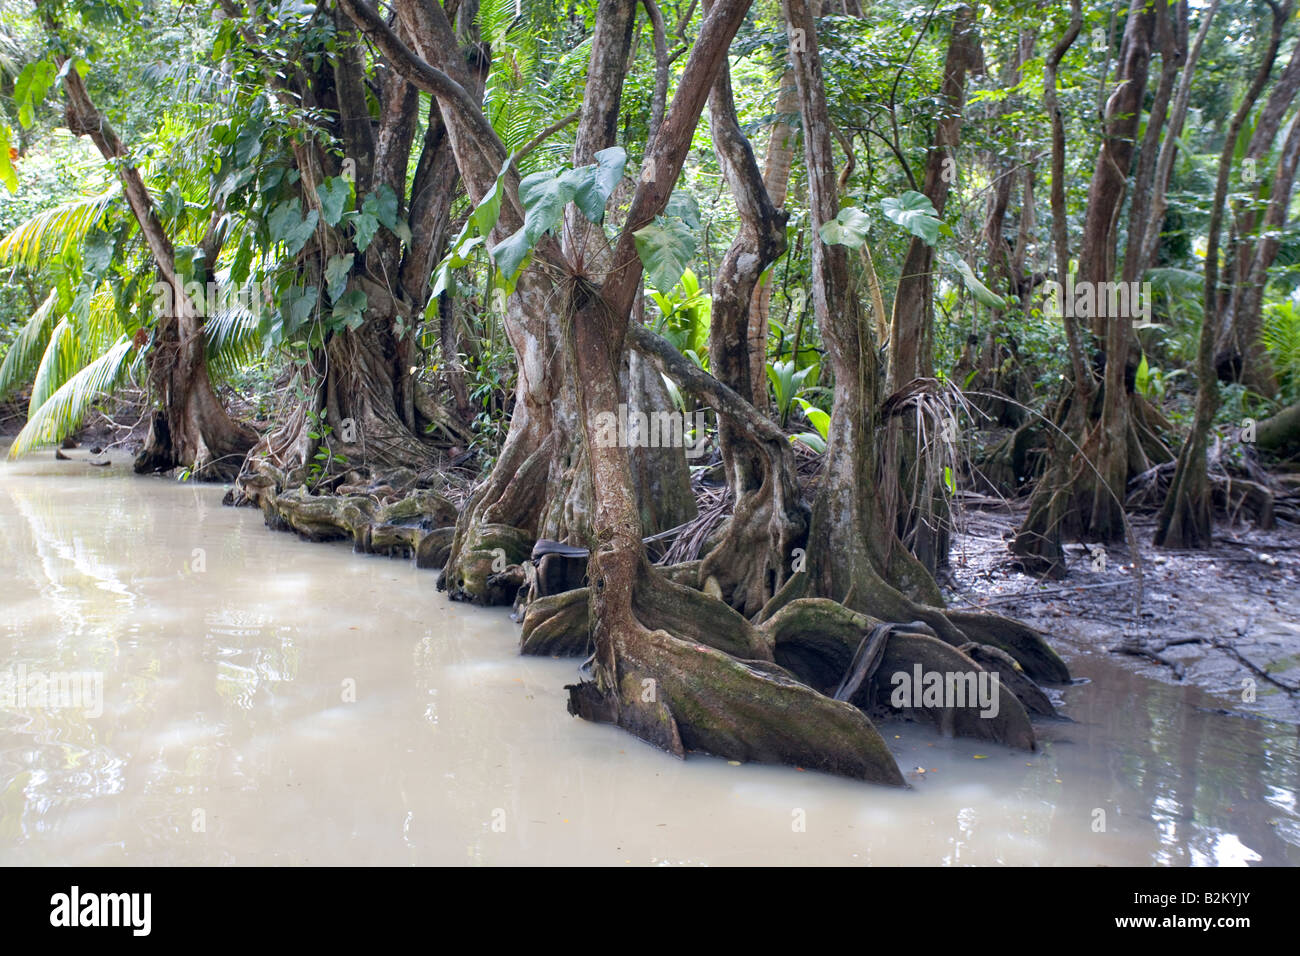 Swampblood trees along the Indian River in Dominica s northern rain forests - Stock Image